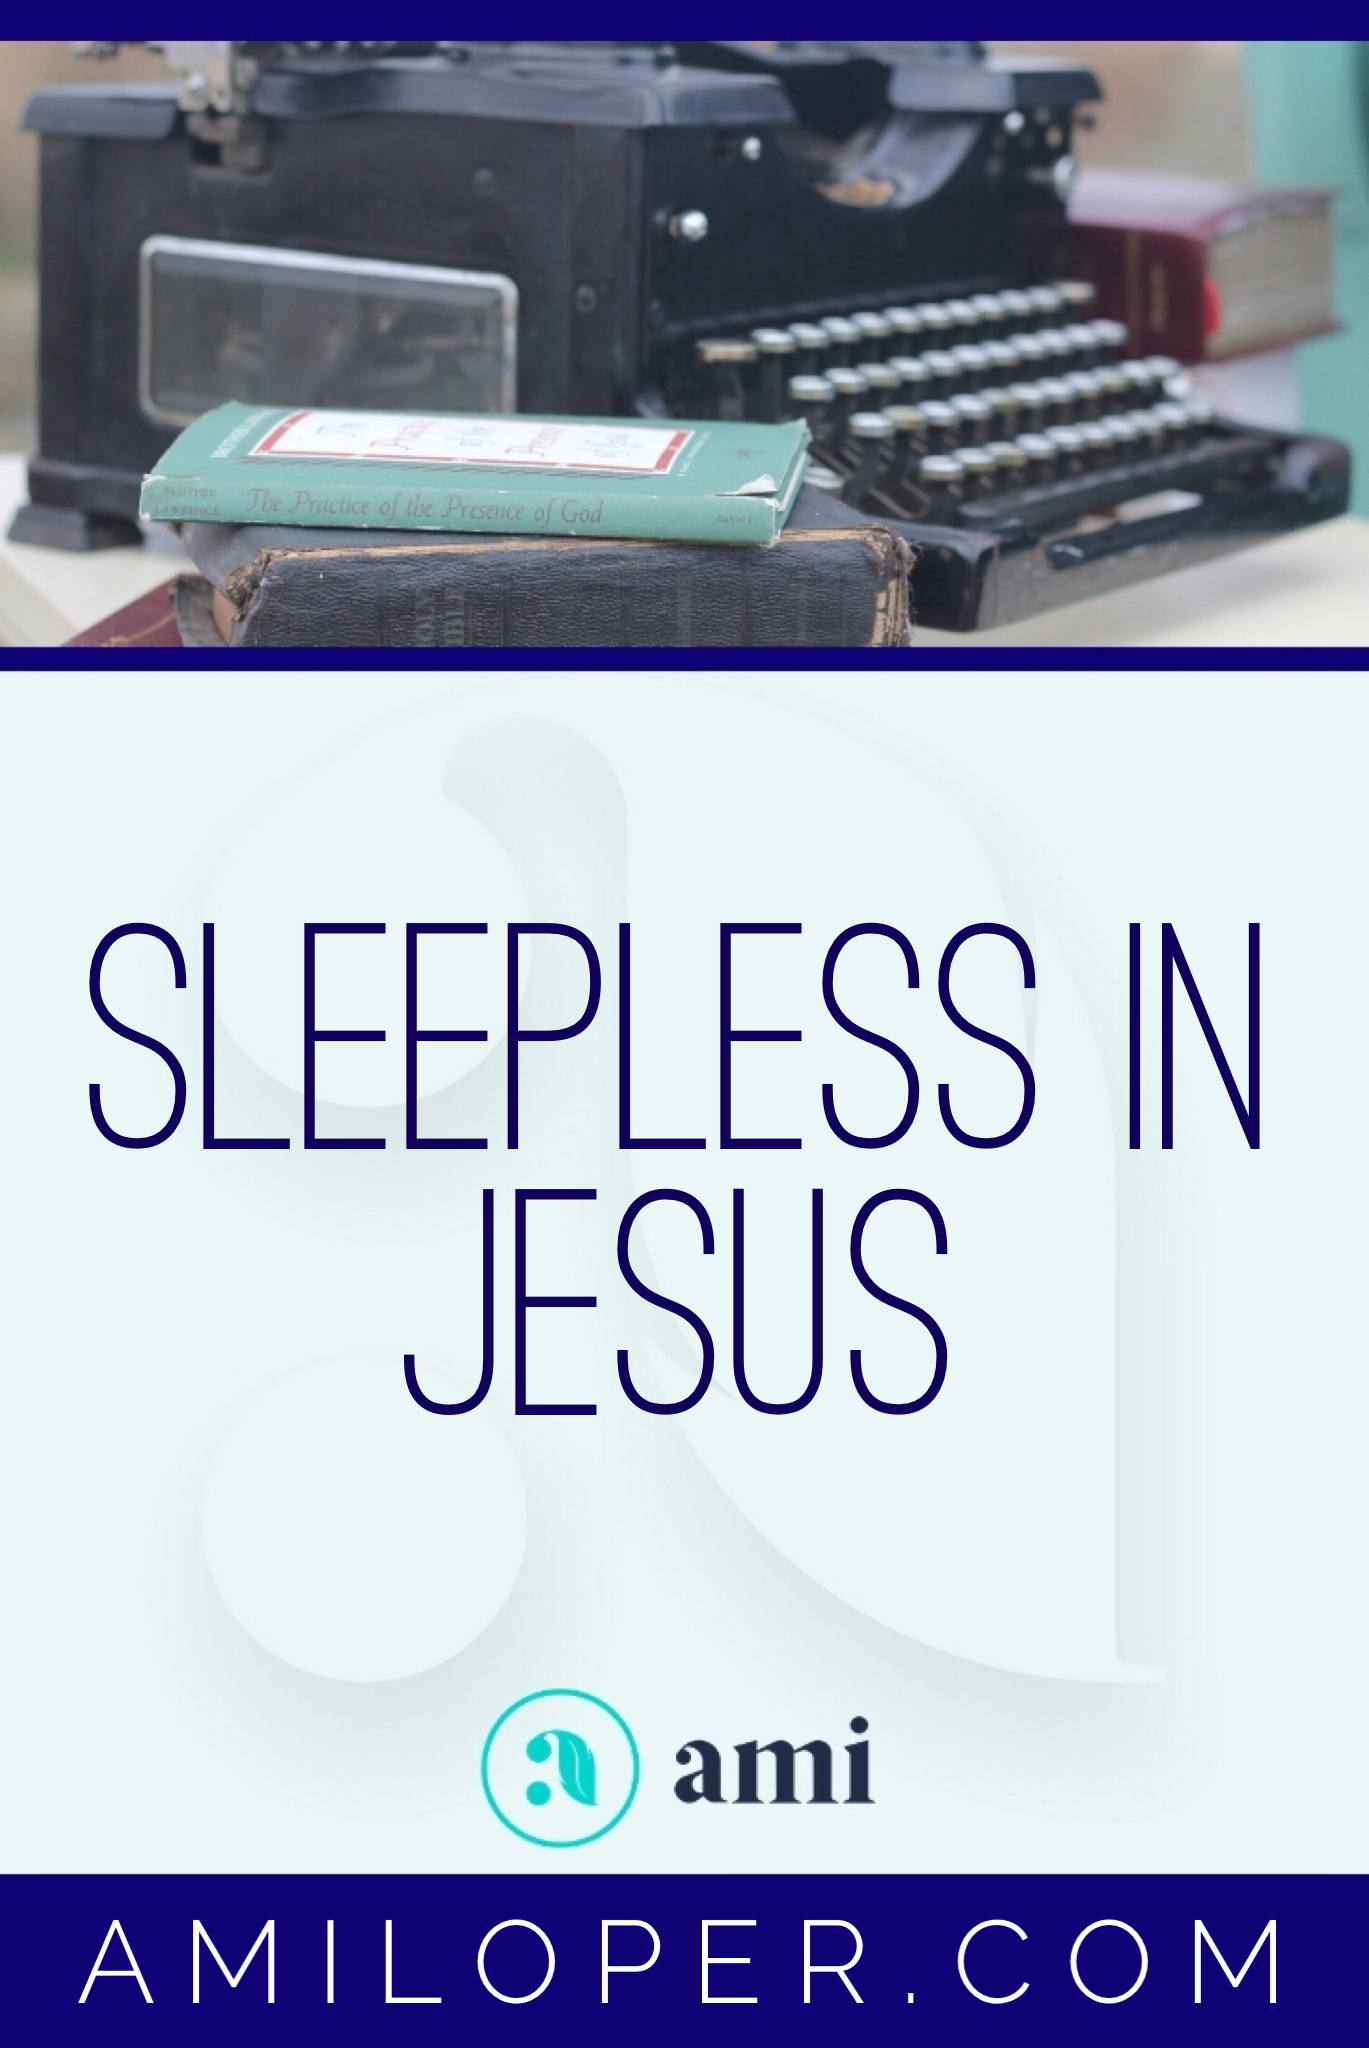 Sleeplessness. I'm sure it visits all of us at some point. Having had an unwelcome amount of experience with sleeplessness, I'm reflecting today on the conclusions people jump to, the things that hinder and some spiritual tools that help. #insomnia #ChristianBlog